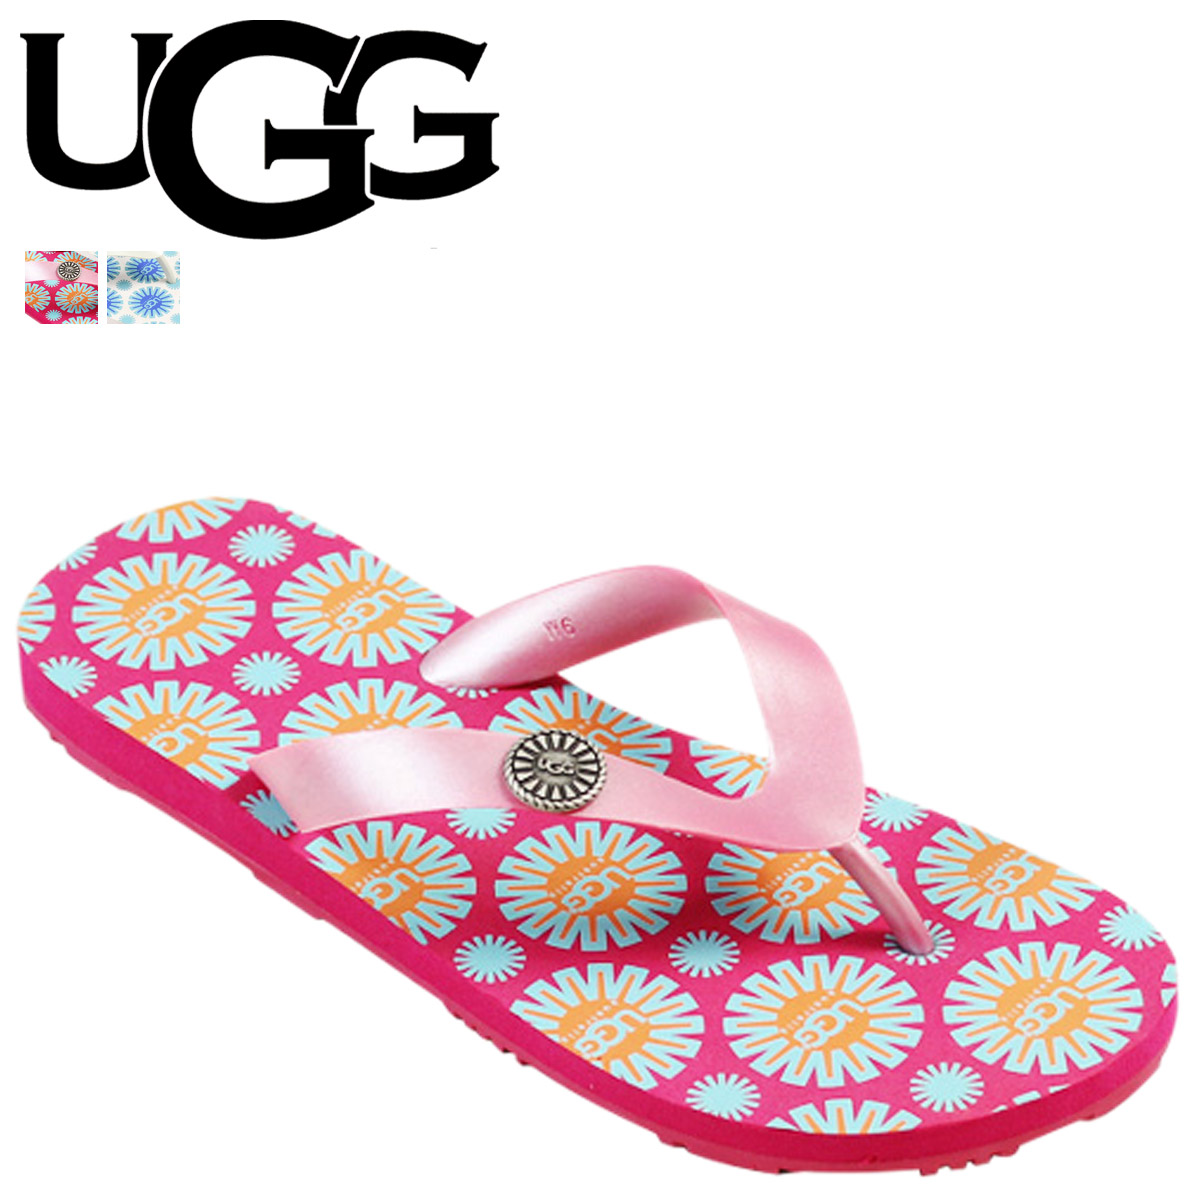 f0ae7eaed77 Point 2 x 2 color UGG UGG women's flare flip flops WOMENS FLARE women's  rubber 2014 SPRING new 1799 [5 / 10 new in stock] [regular] 02P05July14